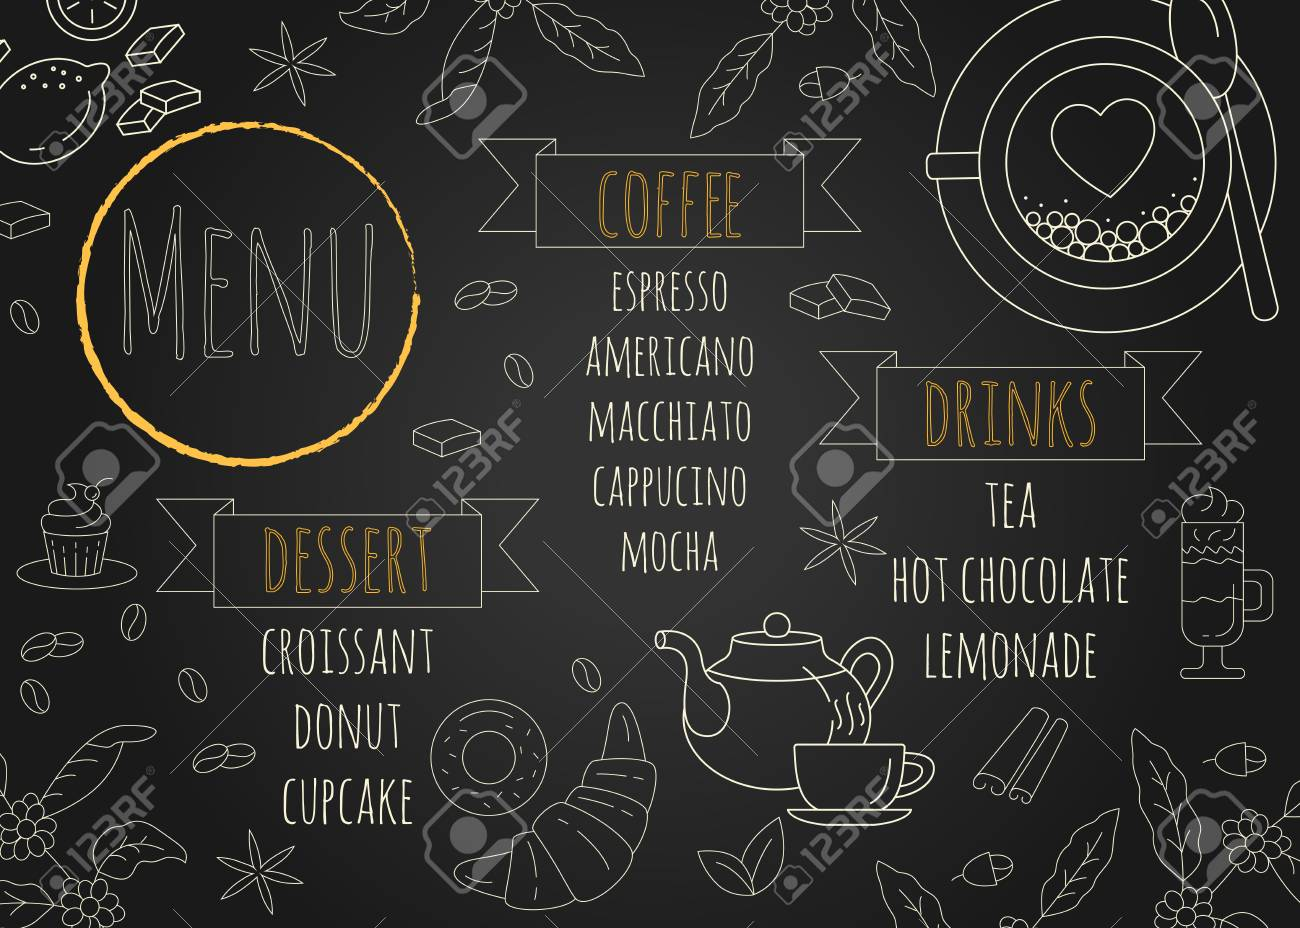 restaurant coffee menu design with chalkboard background royalty